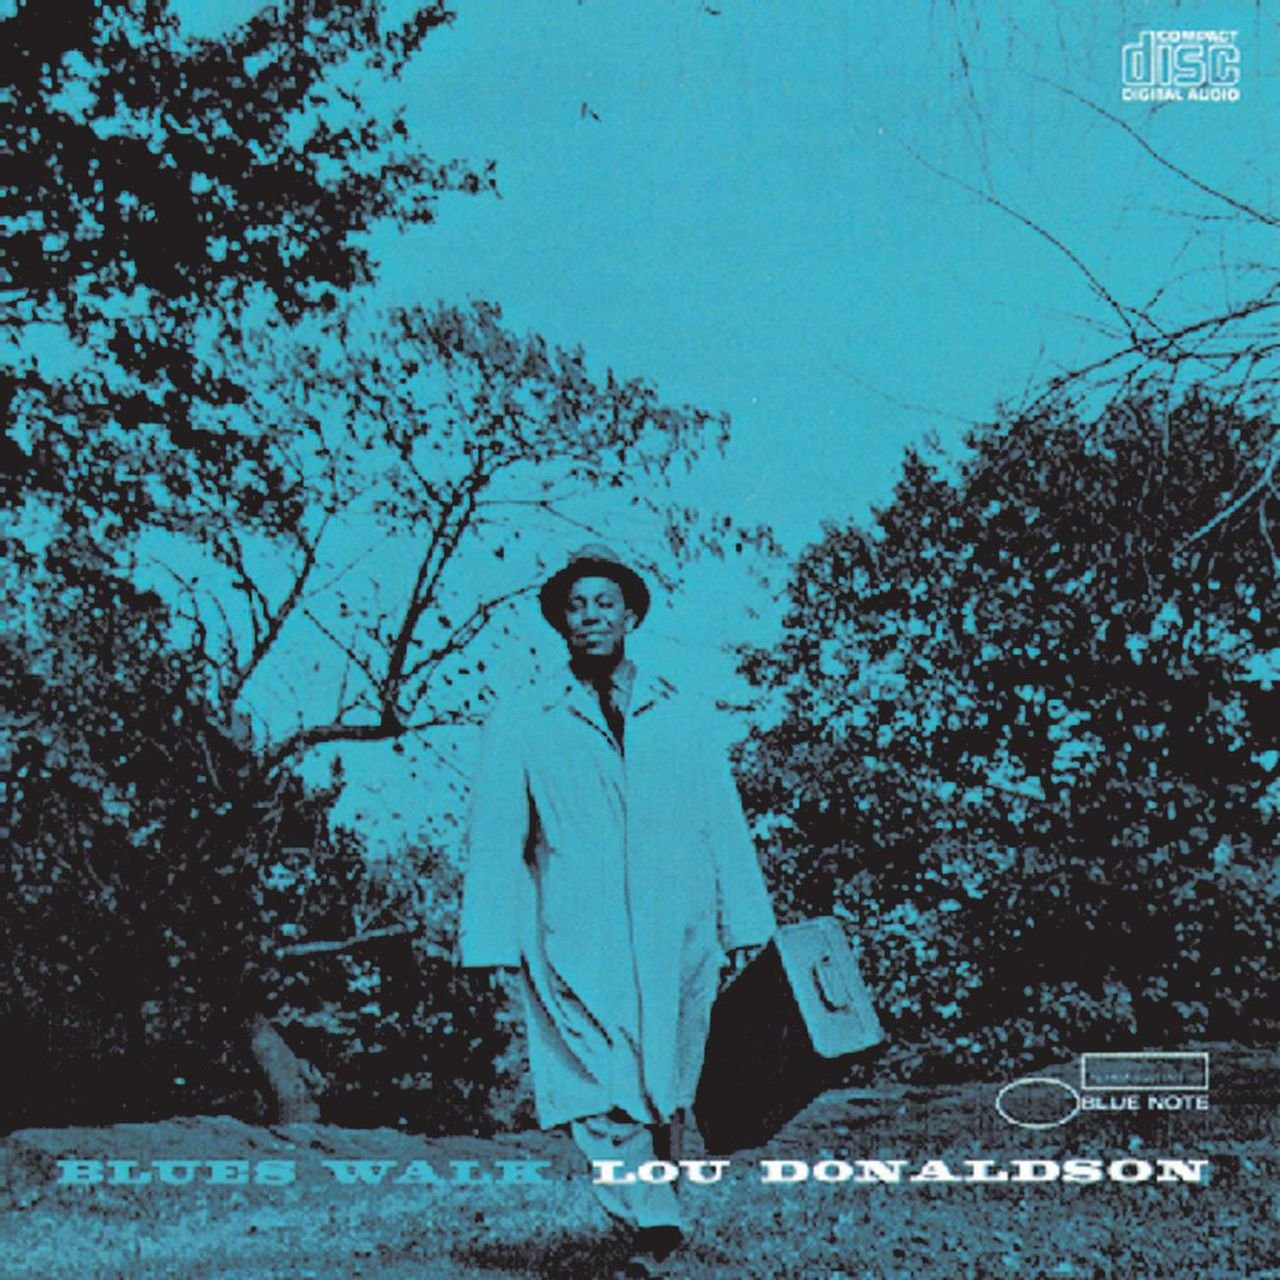 Lou Donaldson </br>Blues Walk</br>Blue Note, 1958